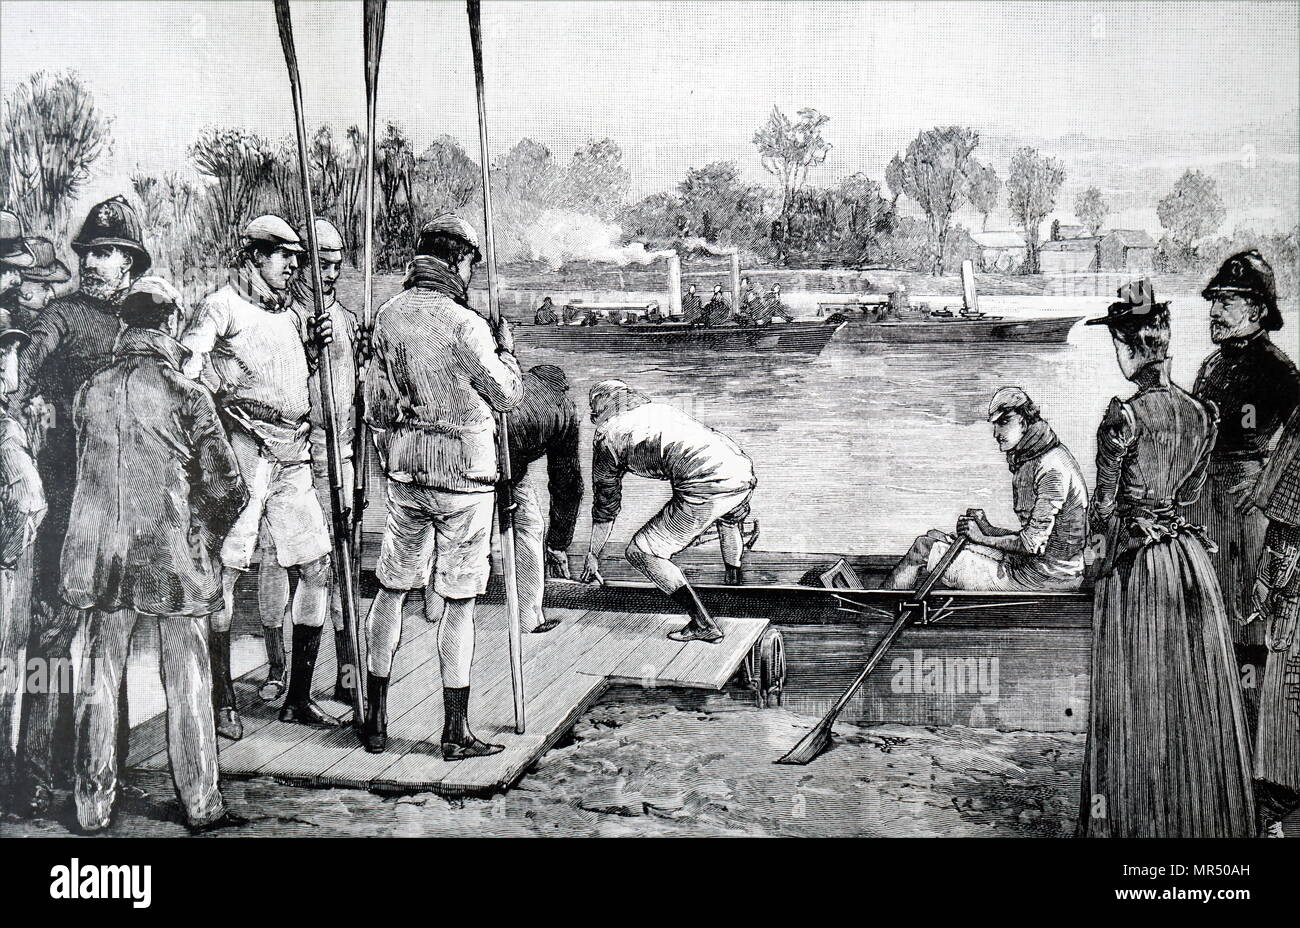 Illustration depicting a scene from Cambridge and Oxford University Boat Race. Dated 19th century - Stock Image